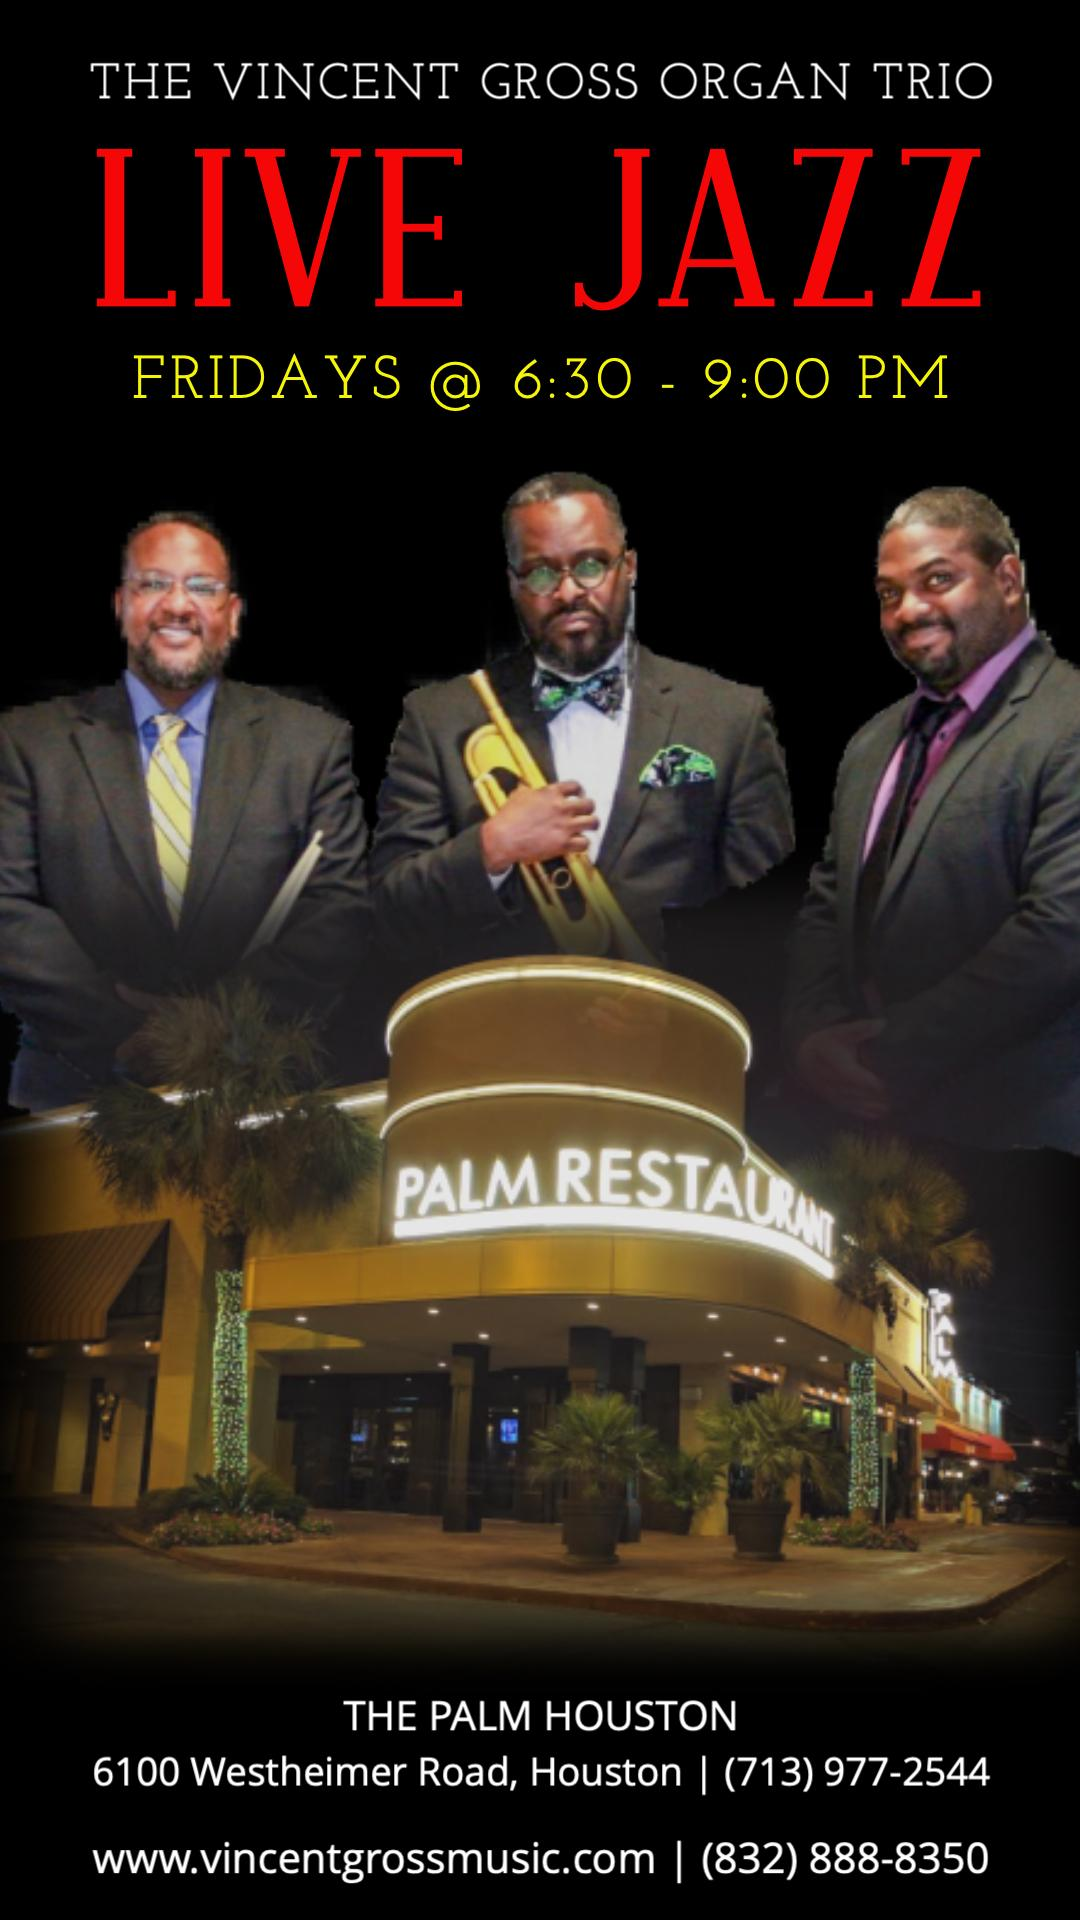 Live Jazz Friday @ The Palm Houston feat. Vincent Gross Organ Trio